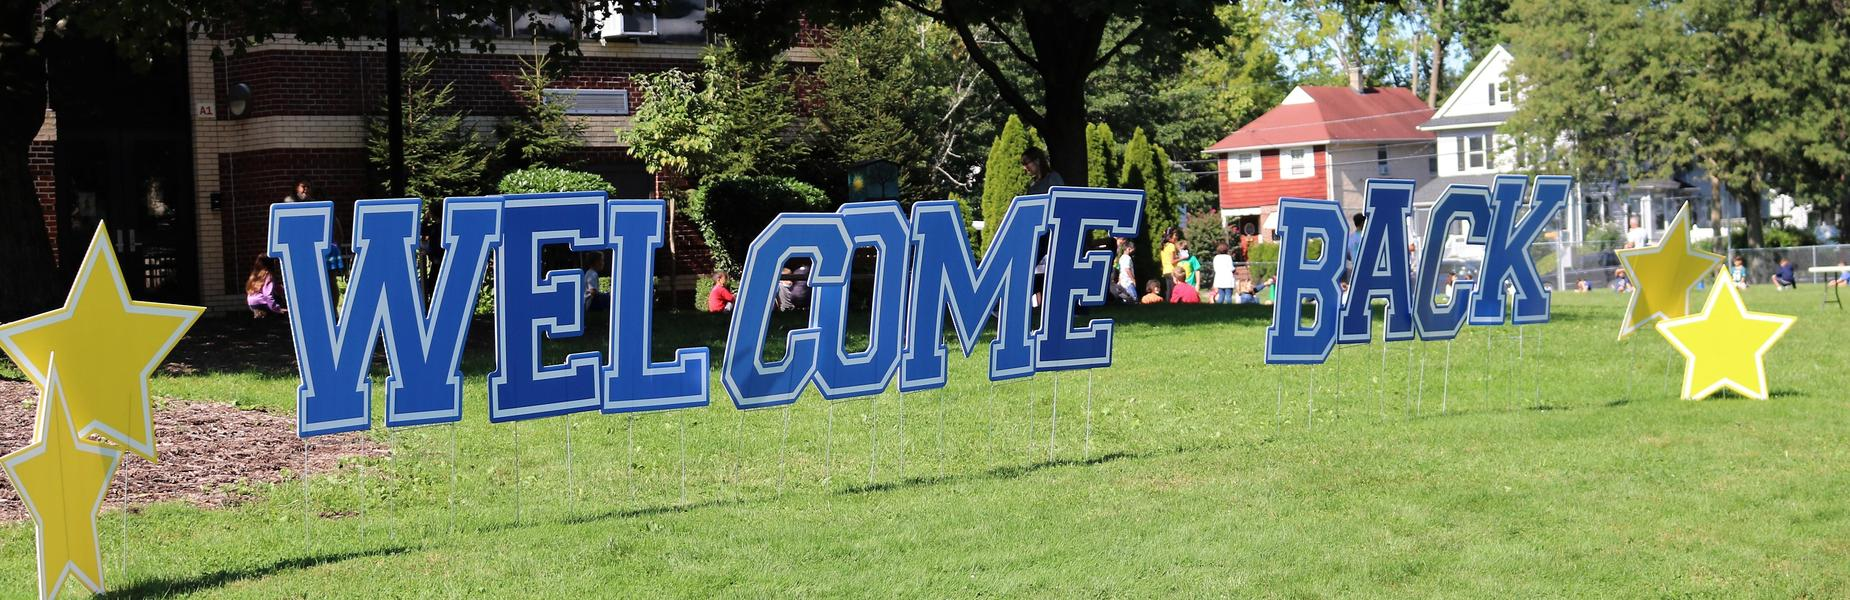 Photo of large Welcome Back sign on school front lawn.